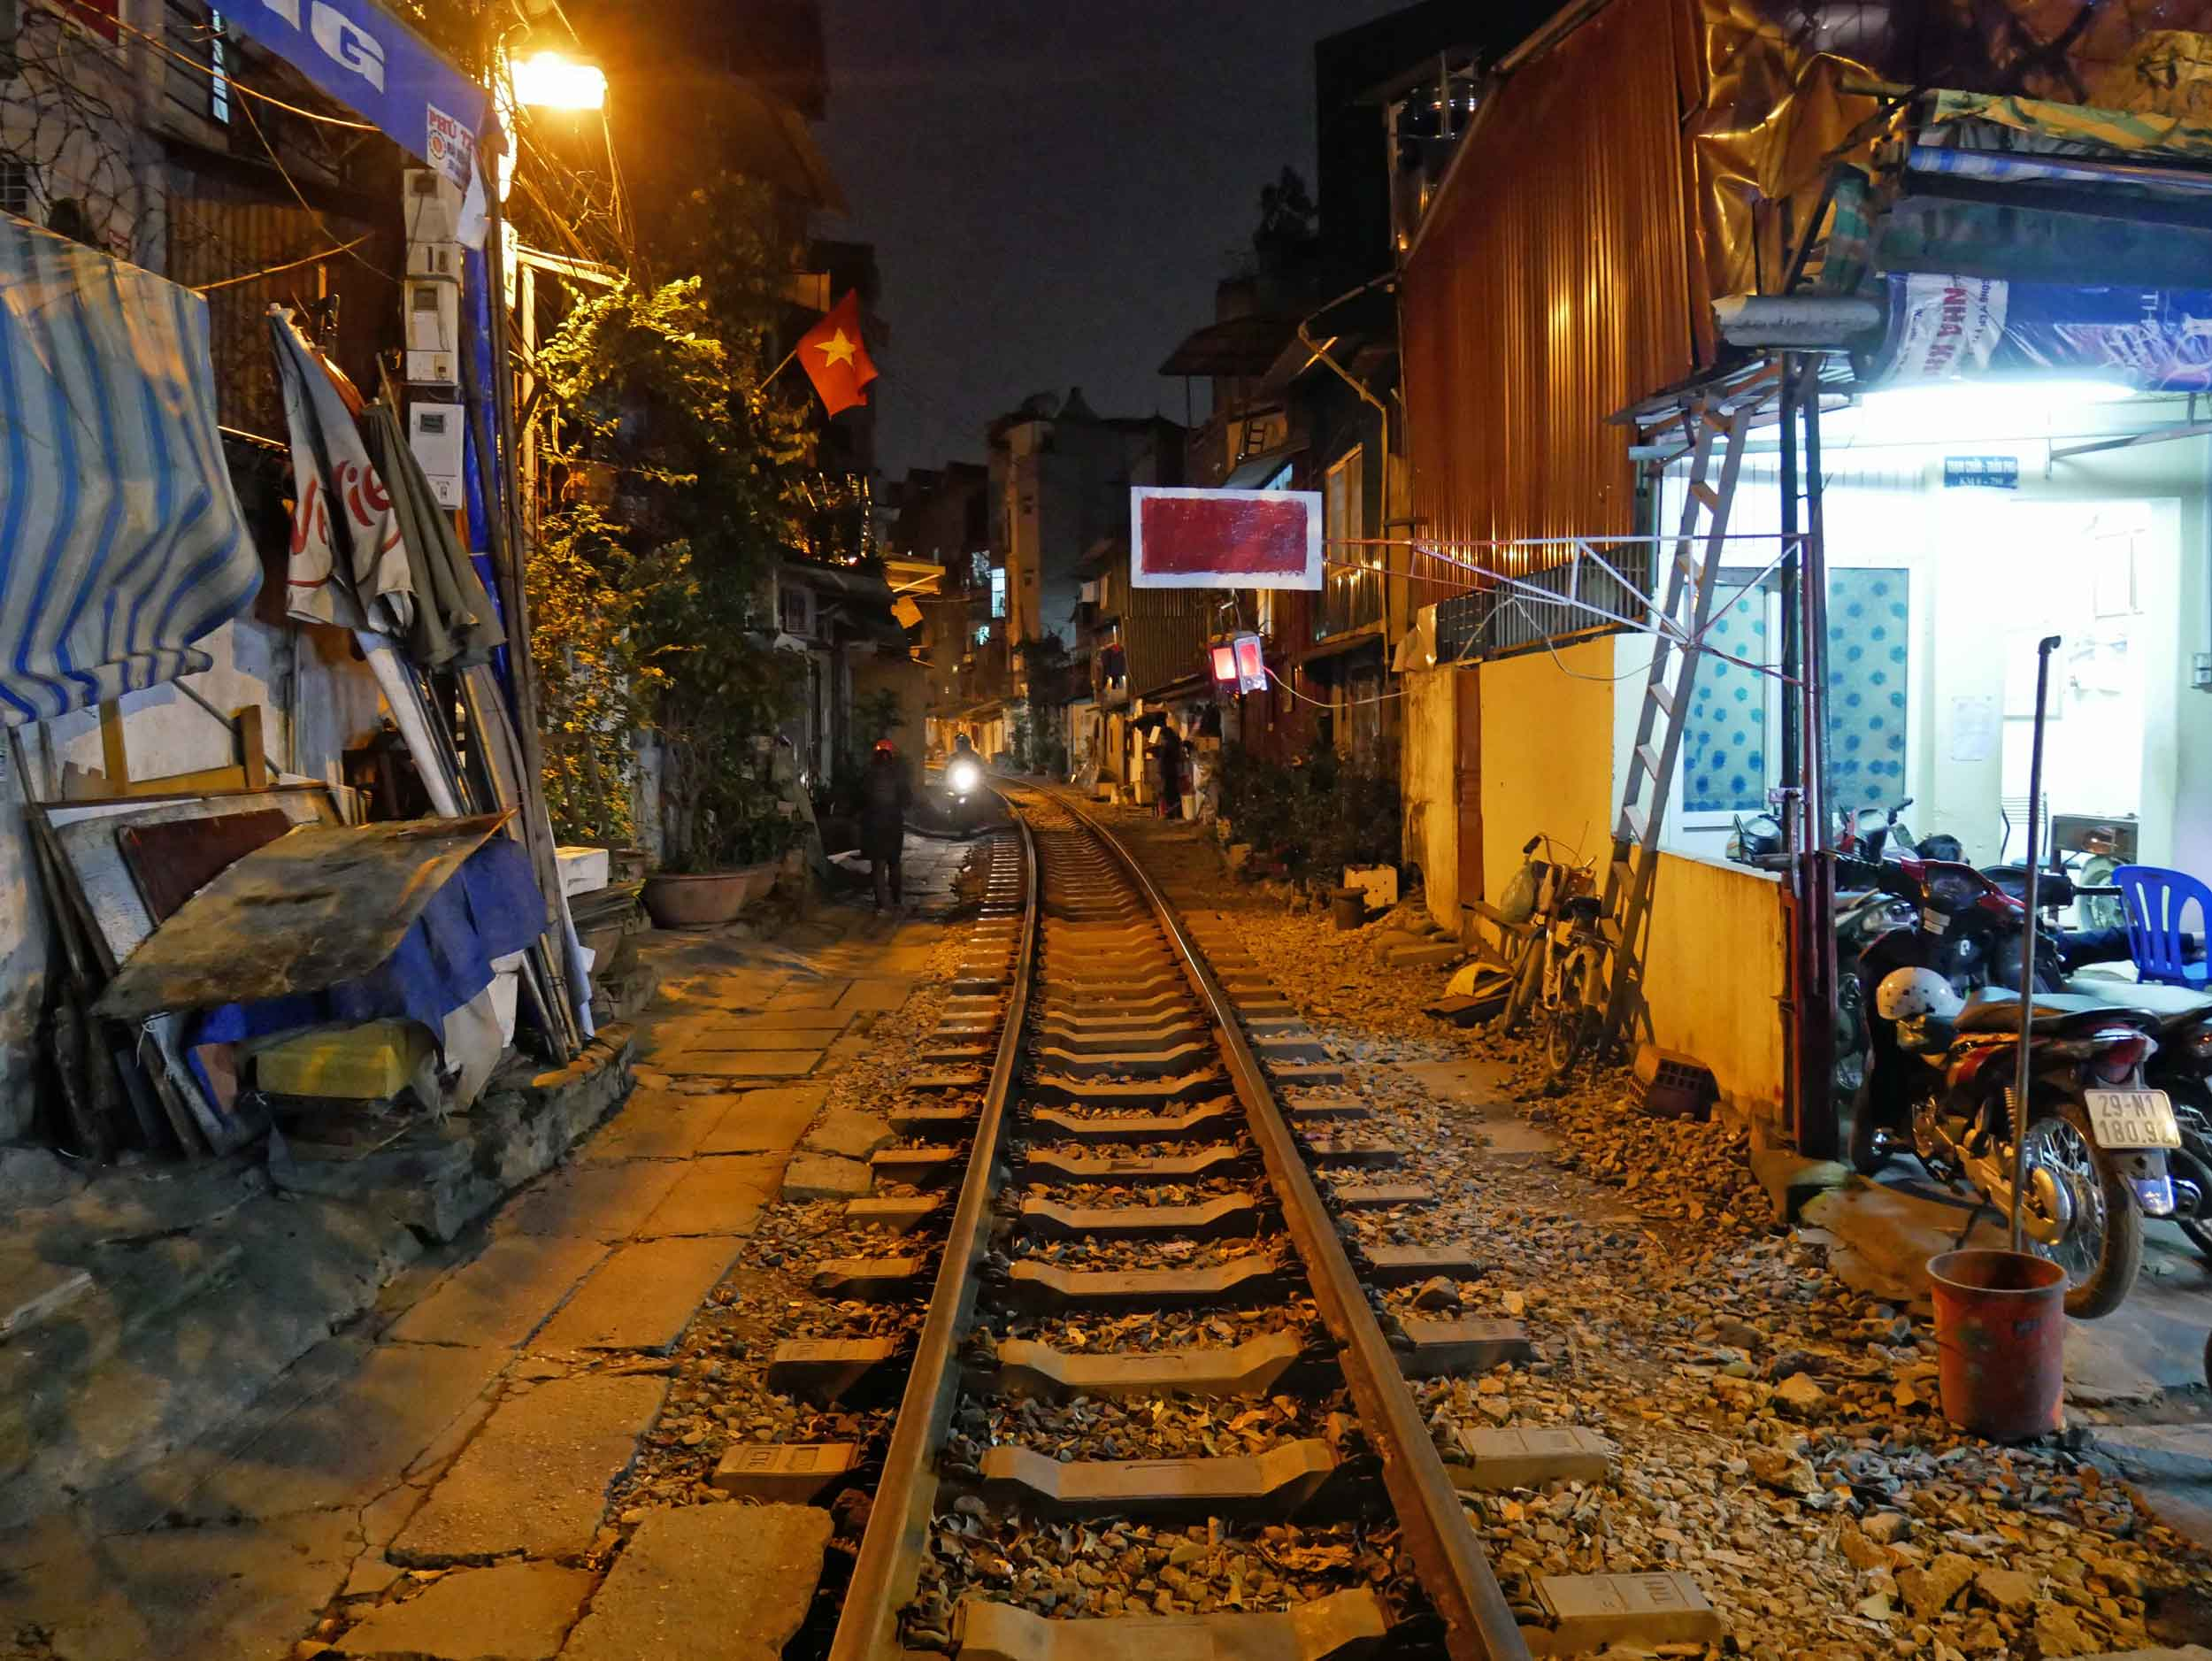 Nearby our hotel, trains still run through the crowded Old Quarter streets, causing locals to pull belongings inside according to schedule.